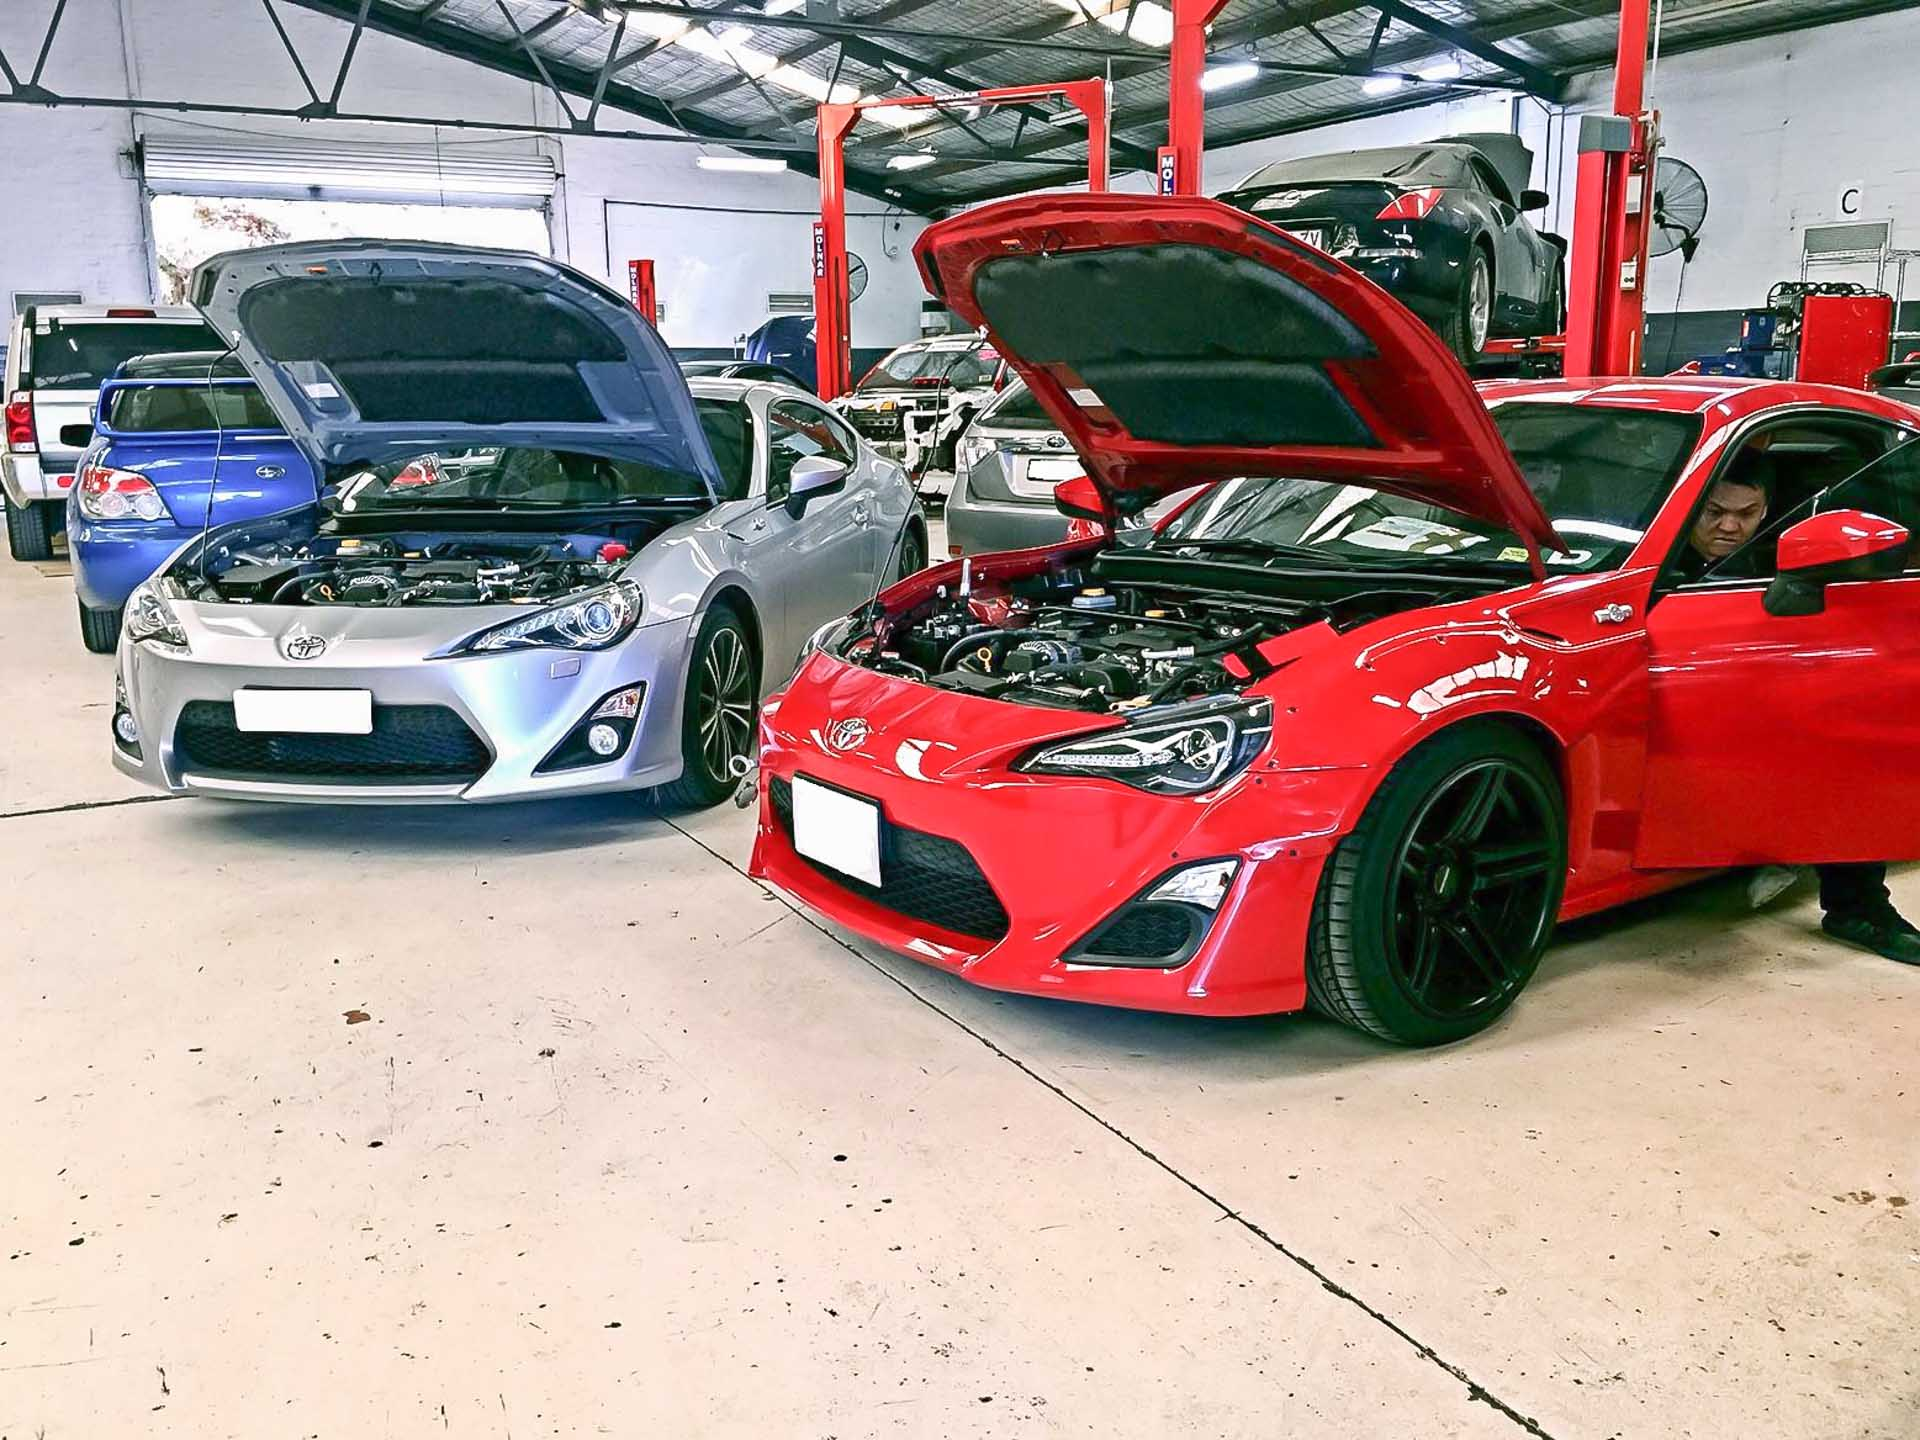 BRZ / GT86 2 BRZ / GT86 With the 86 platform, we don't put together any performance packages as we've found everybody wants different things done at different times. You can rest assured that we have access to source you any brand of any part for your 86 or BRZ